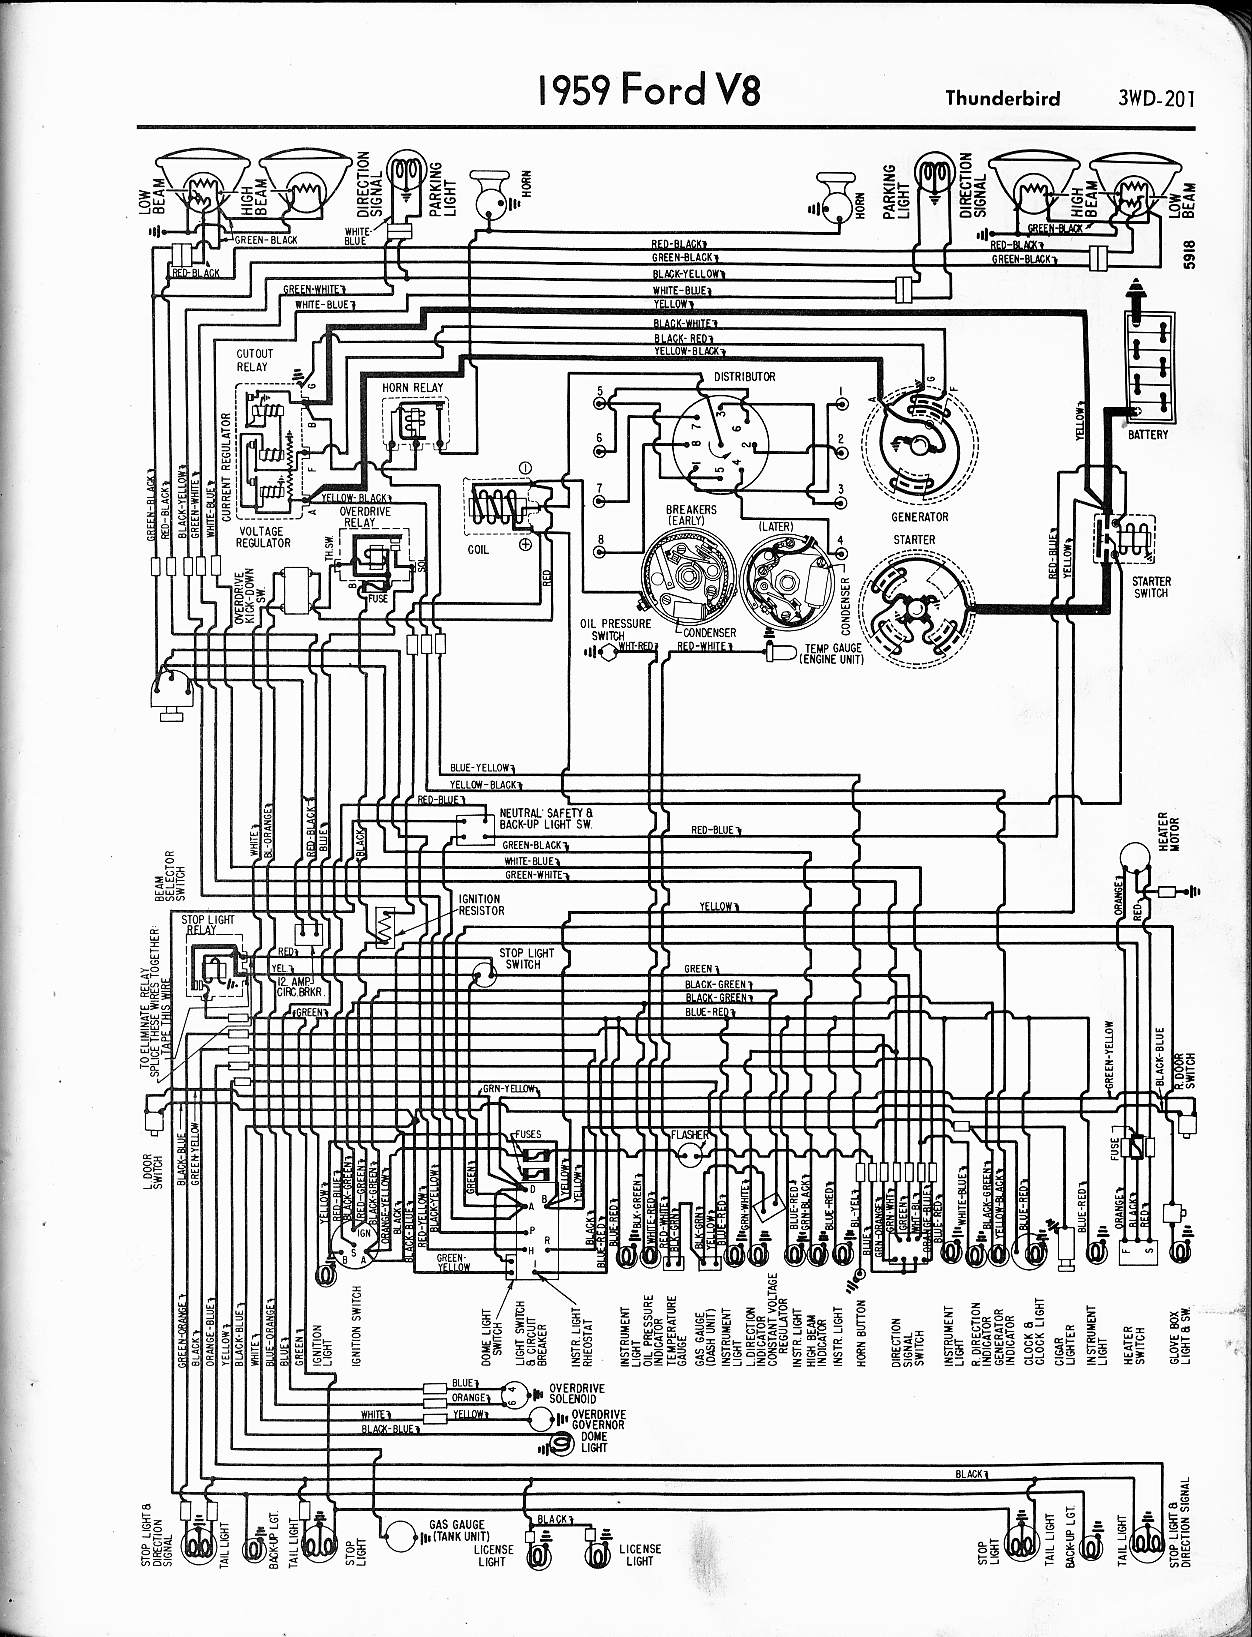 MWire5765 201 57 65 ford wiring diagrams 1970 ford torino wiring diagram at honlapkeszites.co